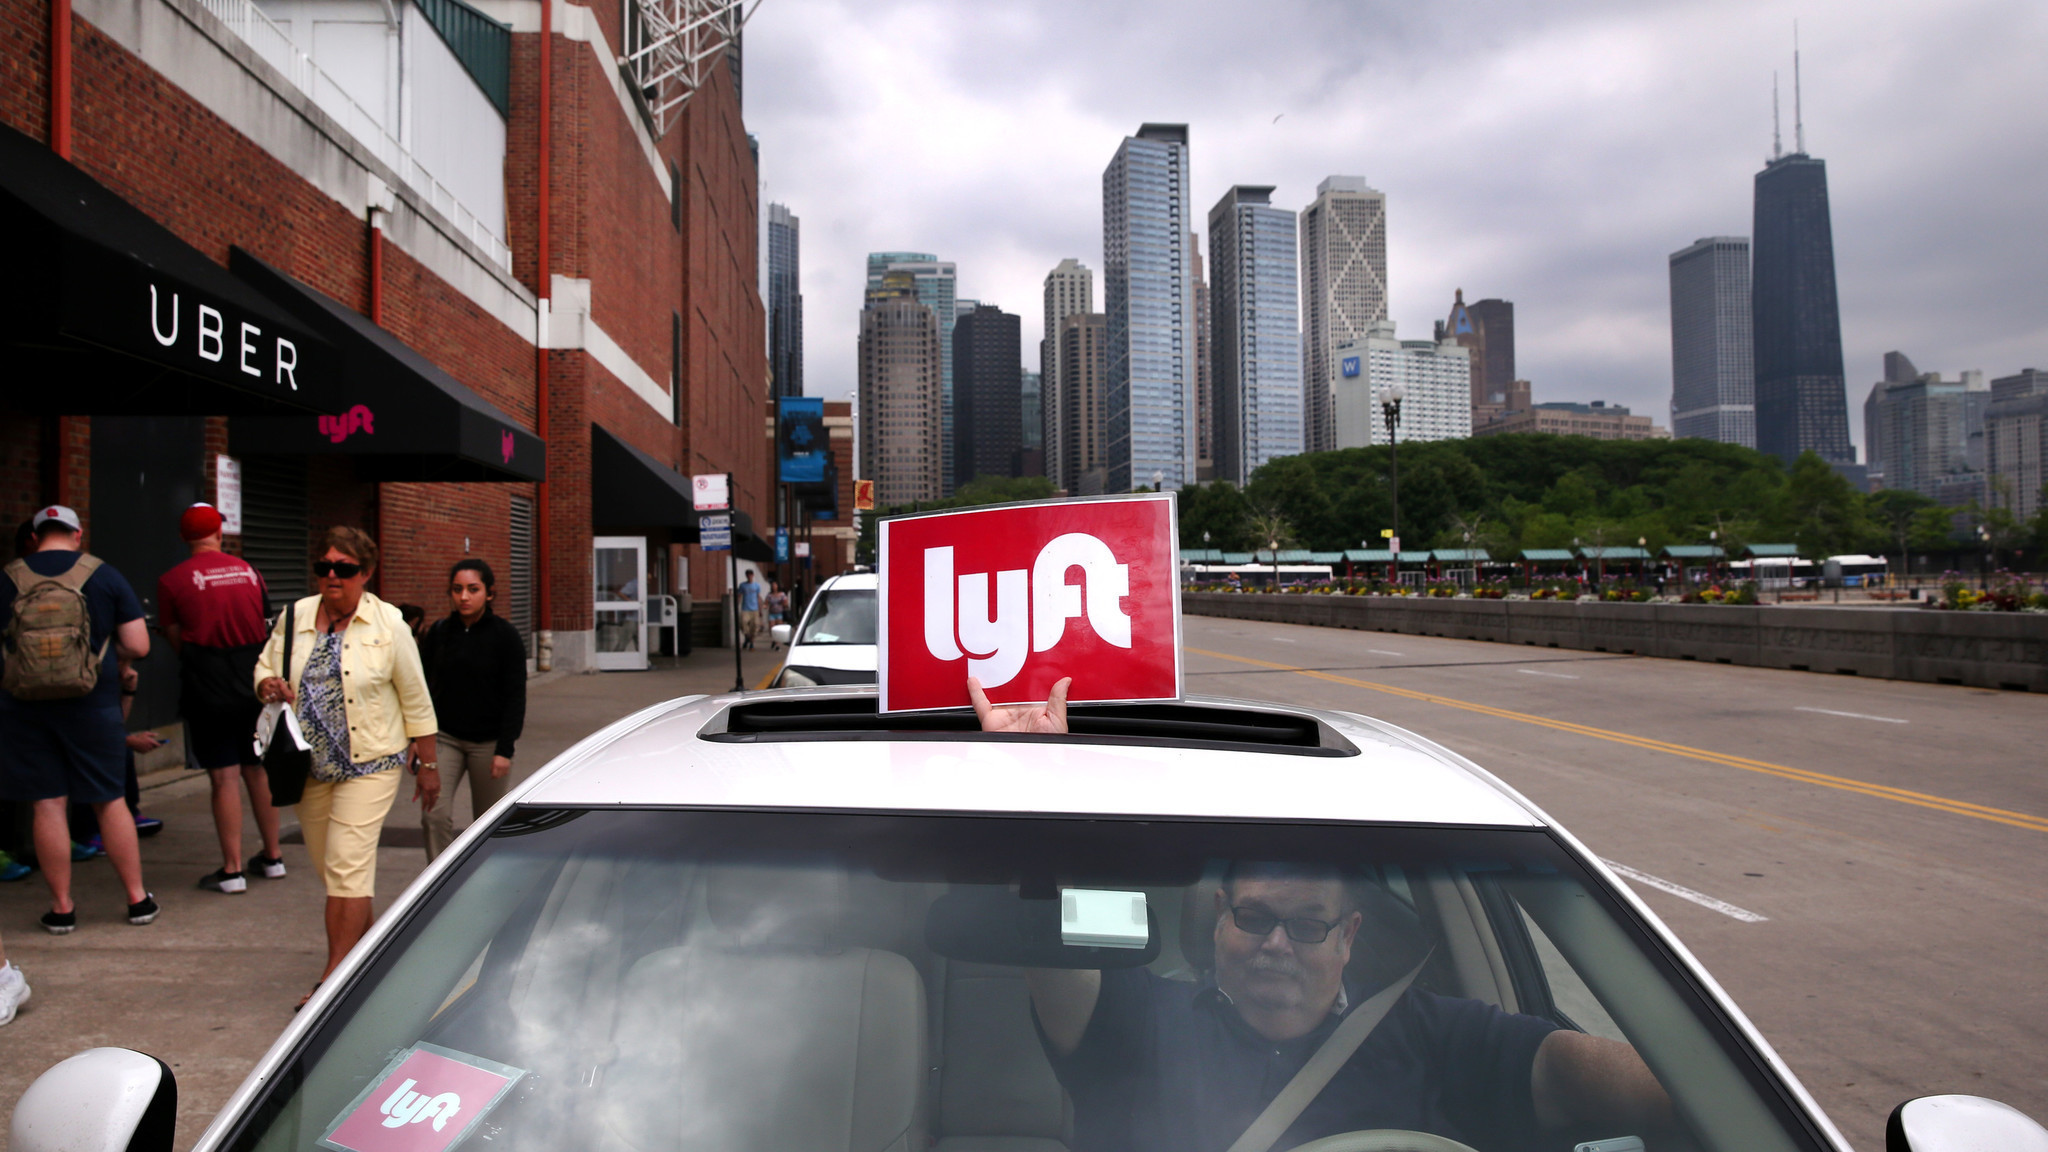 Uber Or Lyft >> Hindsight 2016: Carpooling picked up with UberPool, Lyft Line and Via - Chicago Tribune